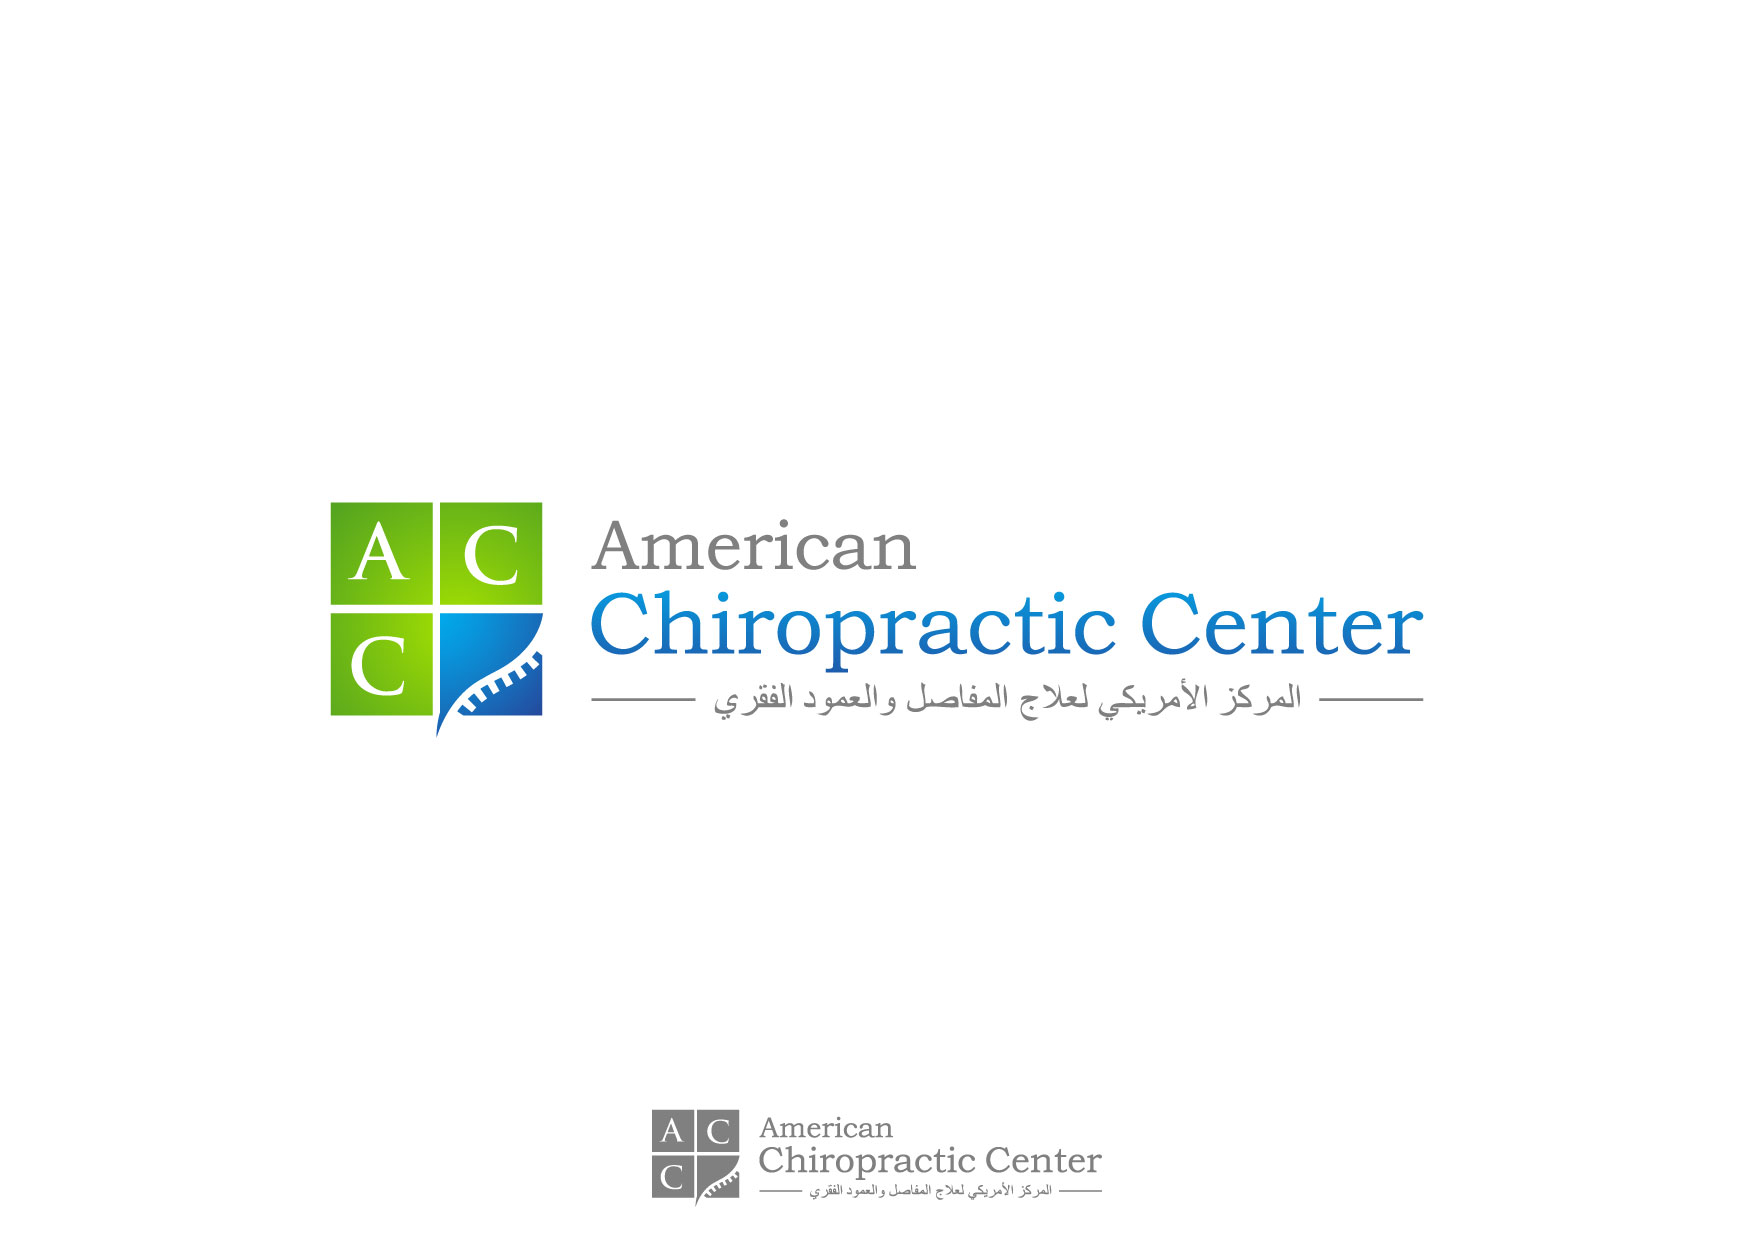 Logo Design by Nurgalih Destianto - Entry No. 99 in the Logo Design Contest Logo Design for American Chiropractic Center.